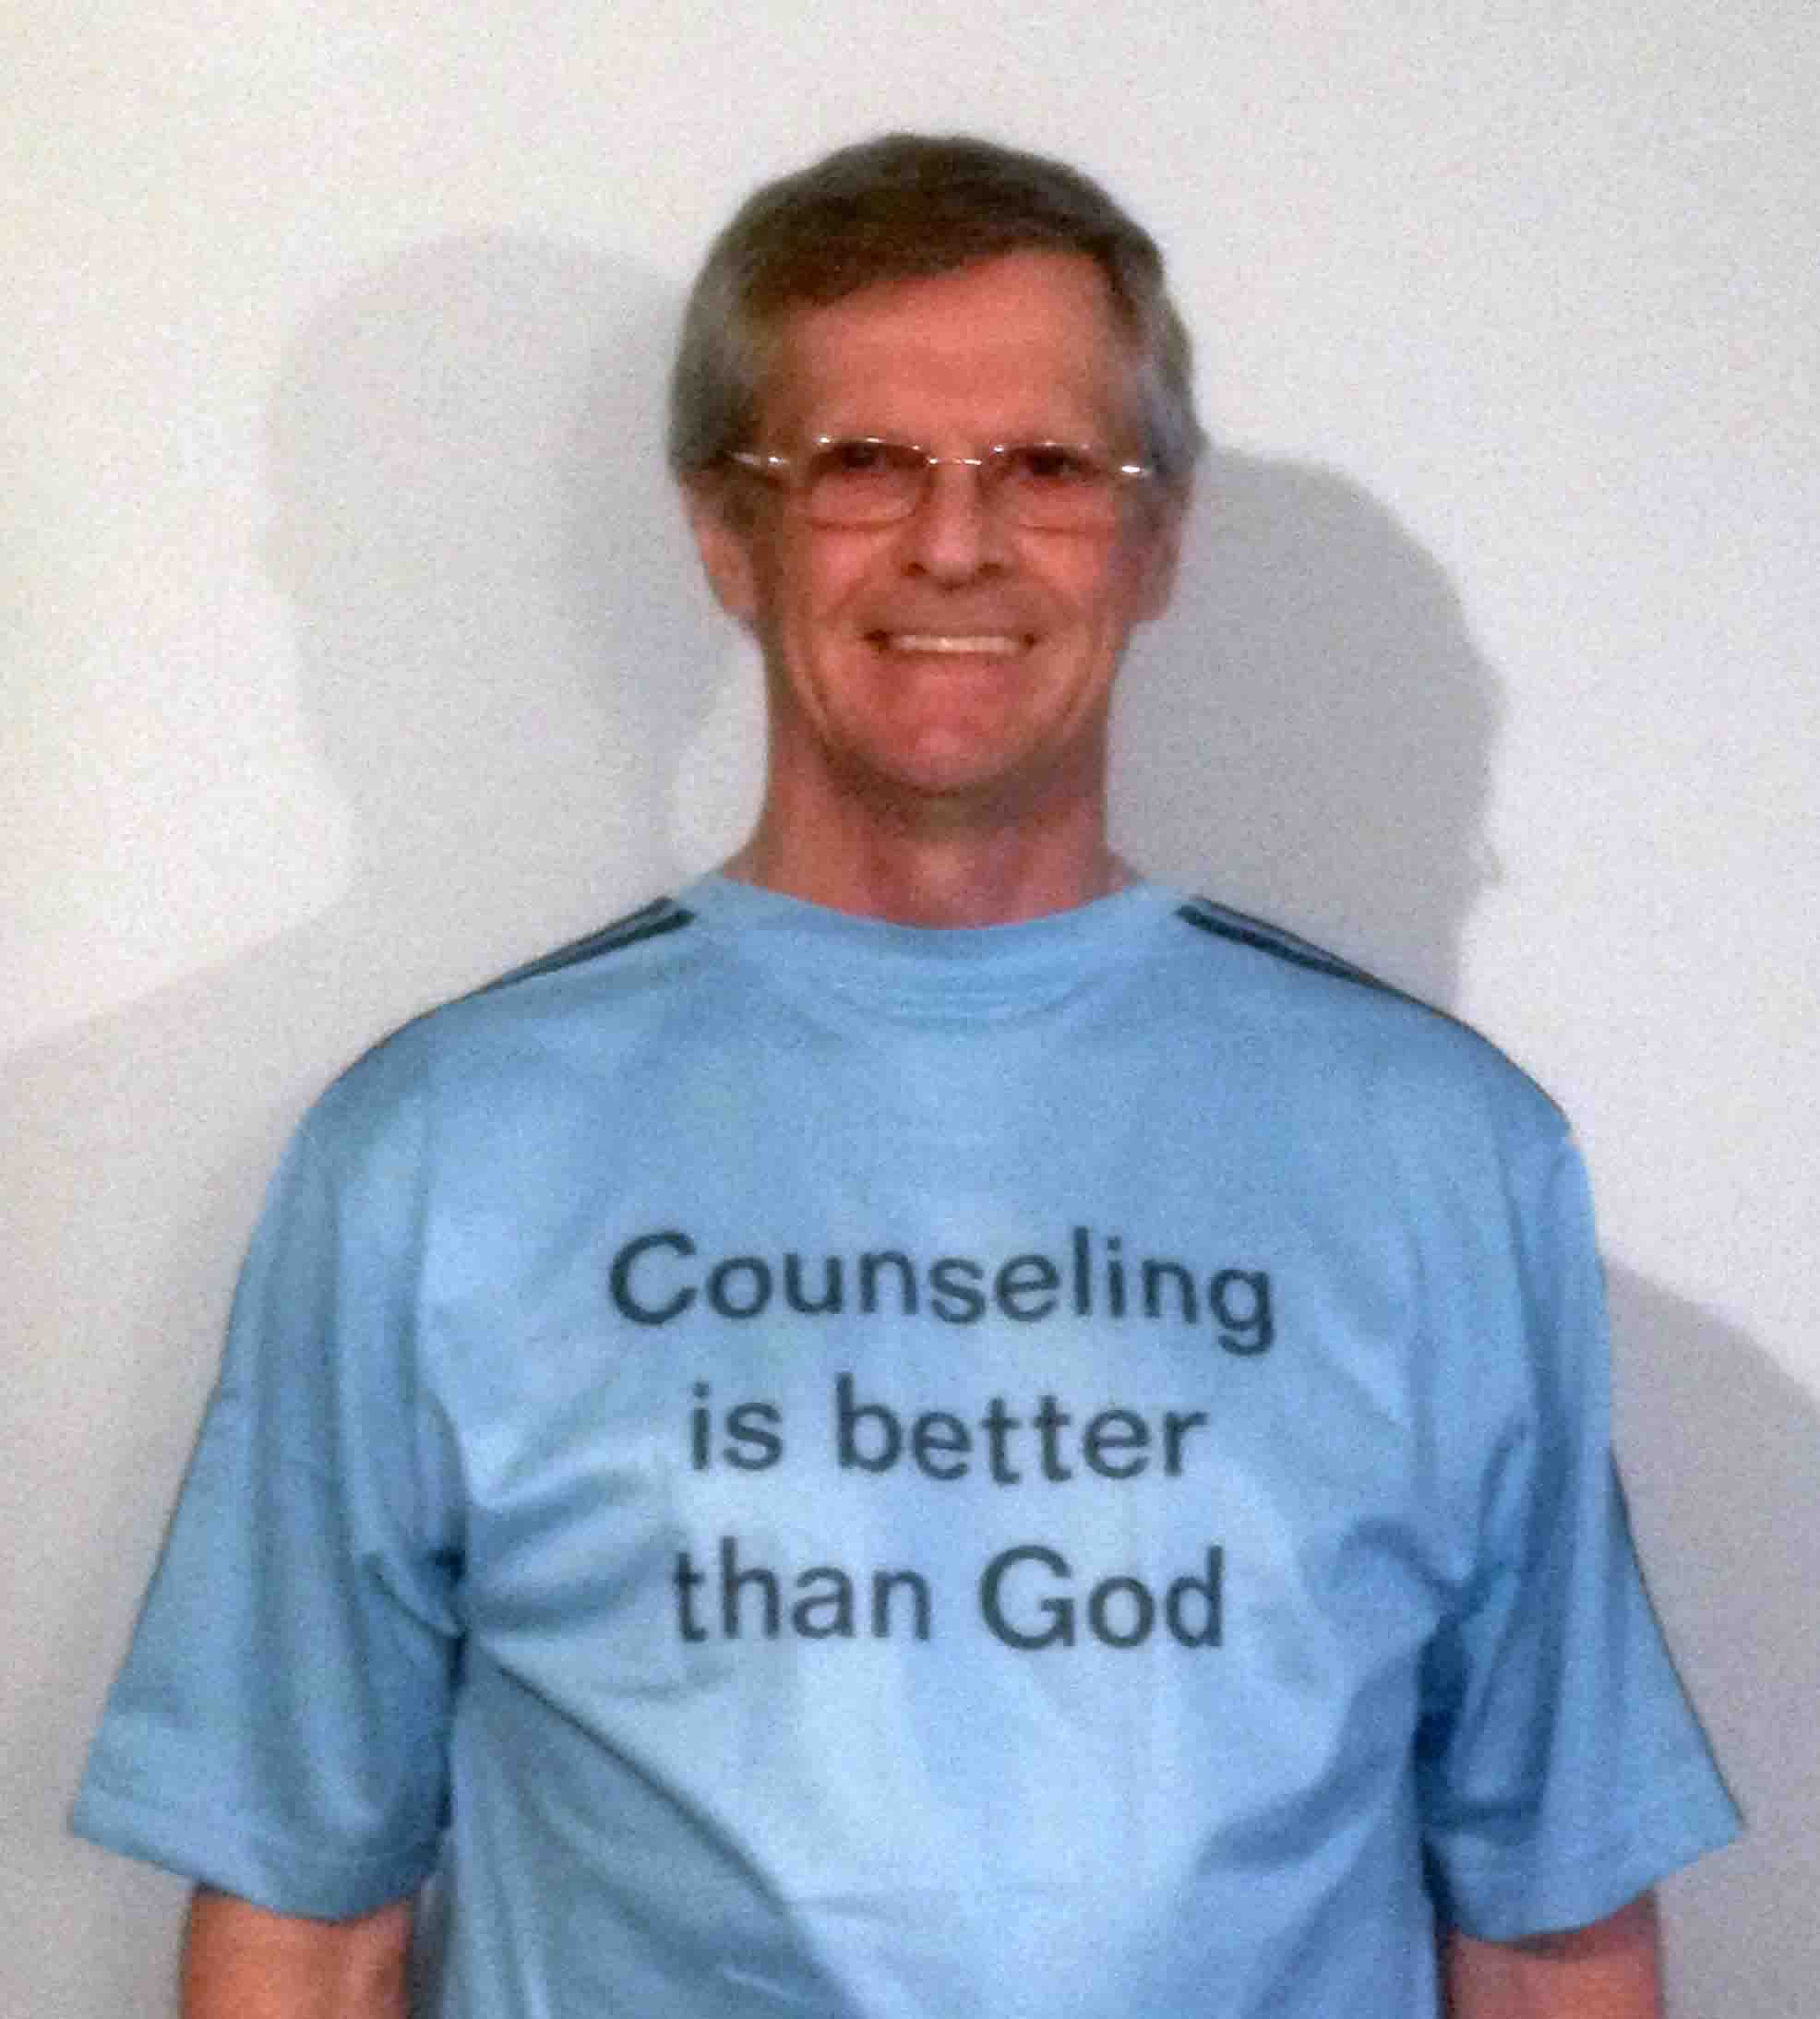 Darwin Bedford wearing his shirt that says 'Counseling is better than God'